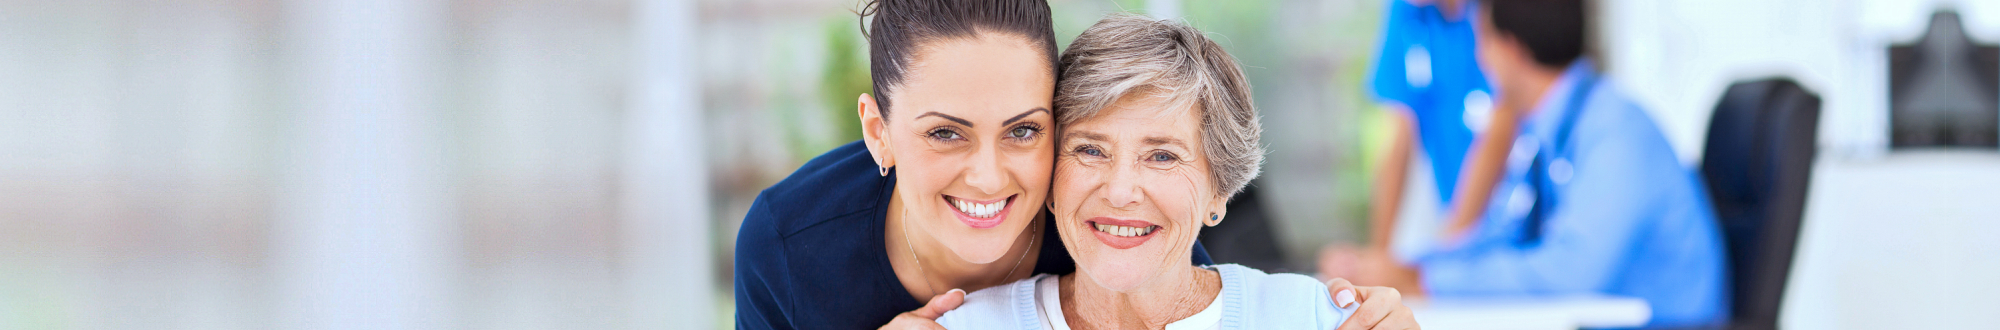 caregiver smiling while hugging senior woman